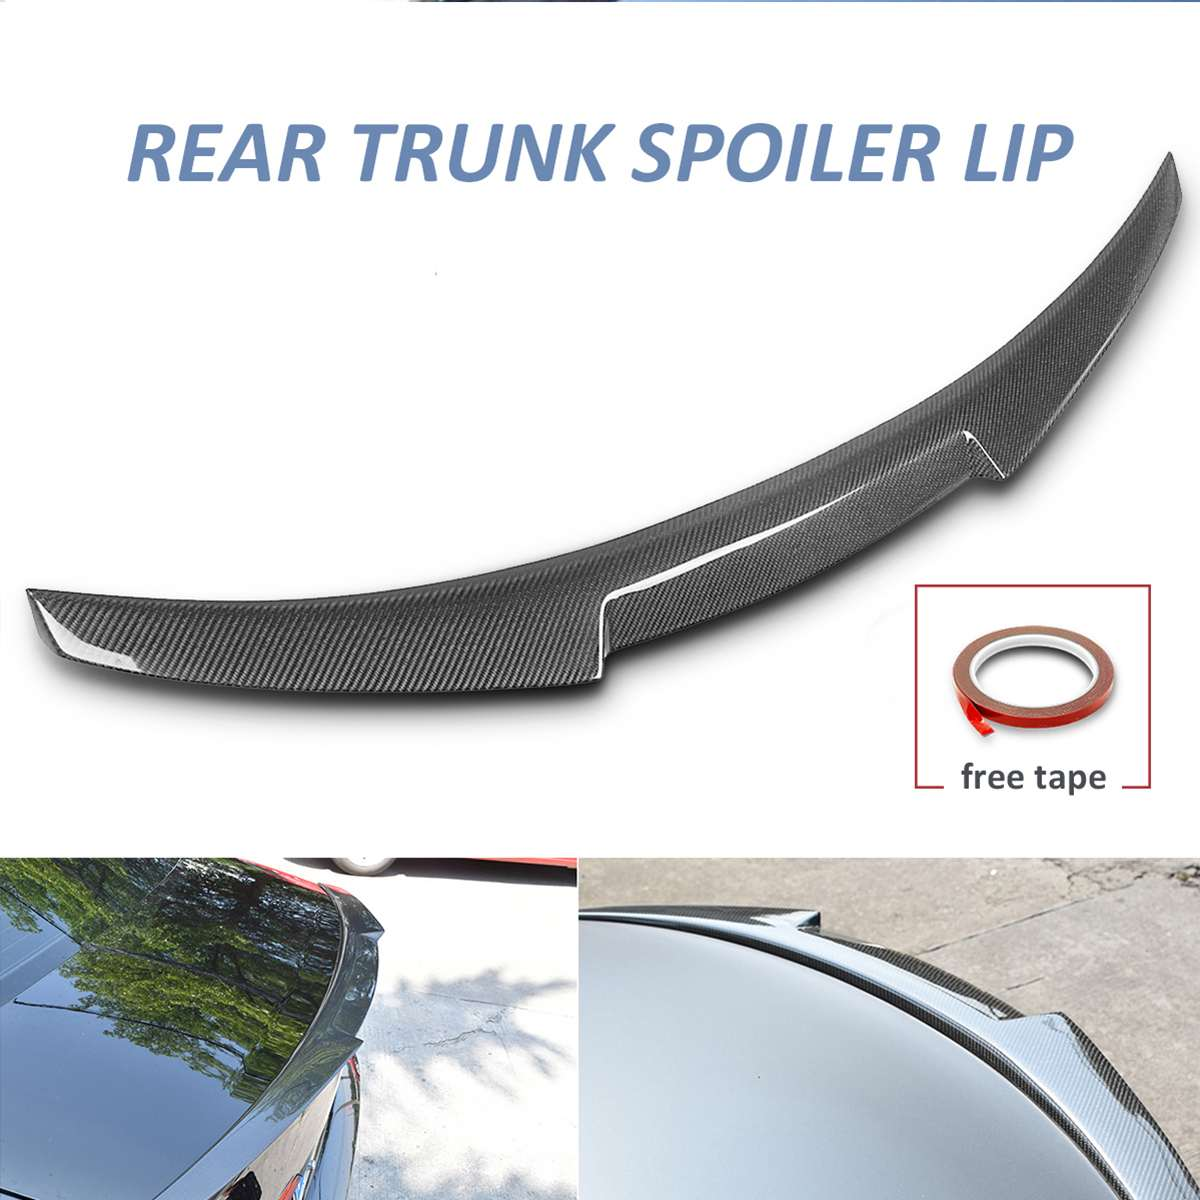 Real Carbon Fiber Rear Trunk Spoiler Lip M4 Style For Audi A6 C7 Sedan Quattro 2013-2016 Rear Wing Spoiler Rear Trunk Roof WingReal Carbon Fiber Rear Trunk Spoiler Lip M4 Style For Audi A6 C7 Sedan Quattro 2013-2016 Rear Wing Spoiler Rear Trunk Roof Wing